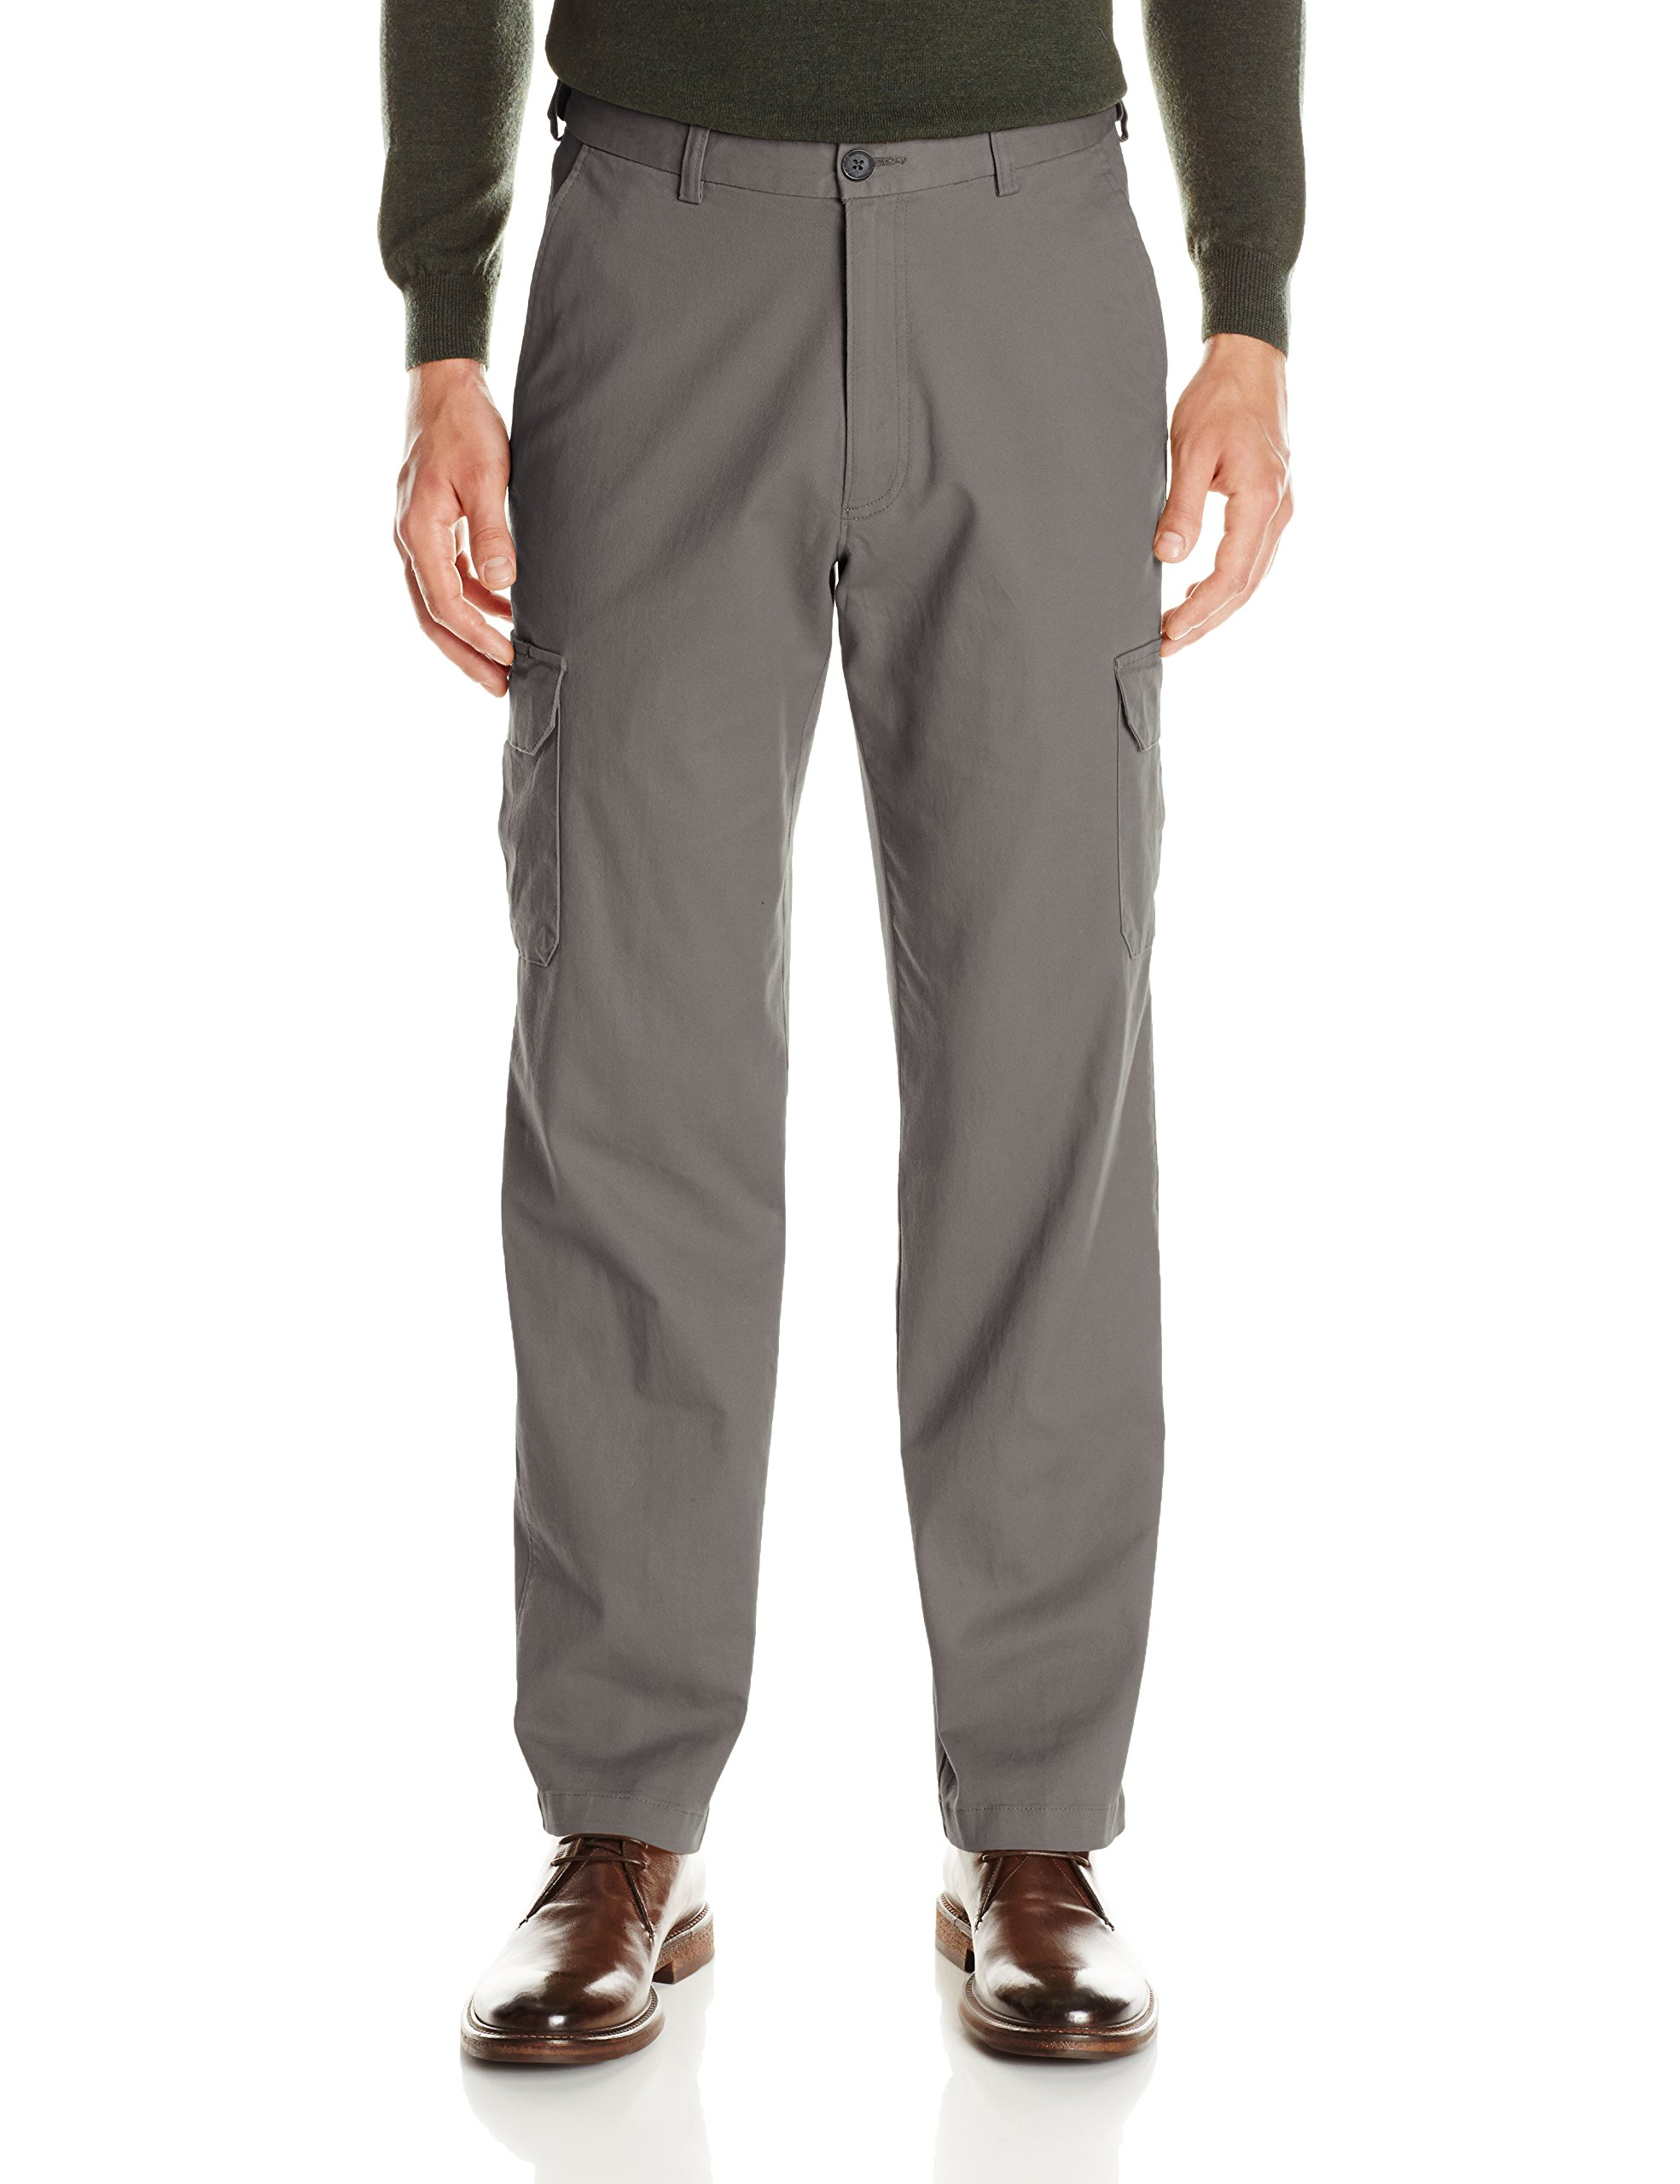 Haggar Men's Stretch Comfort Cargo Expandable Waist Classic Fit Plain Front Pant, Medium Grey, 40x32